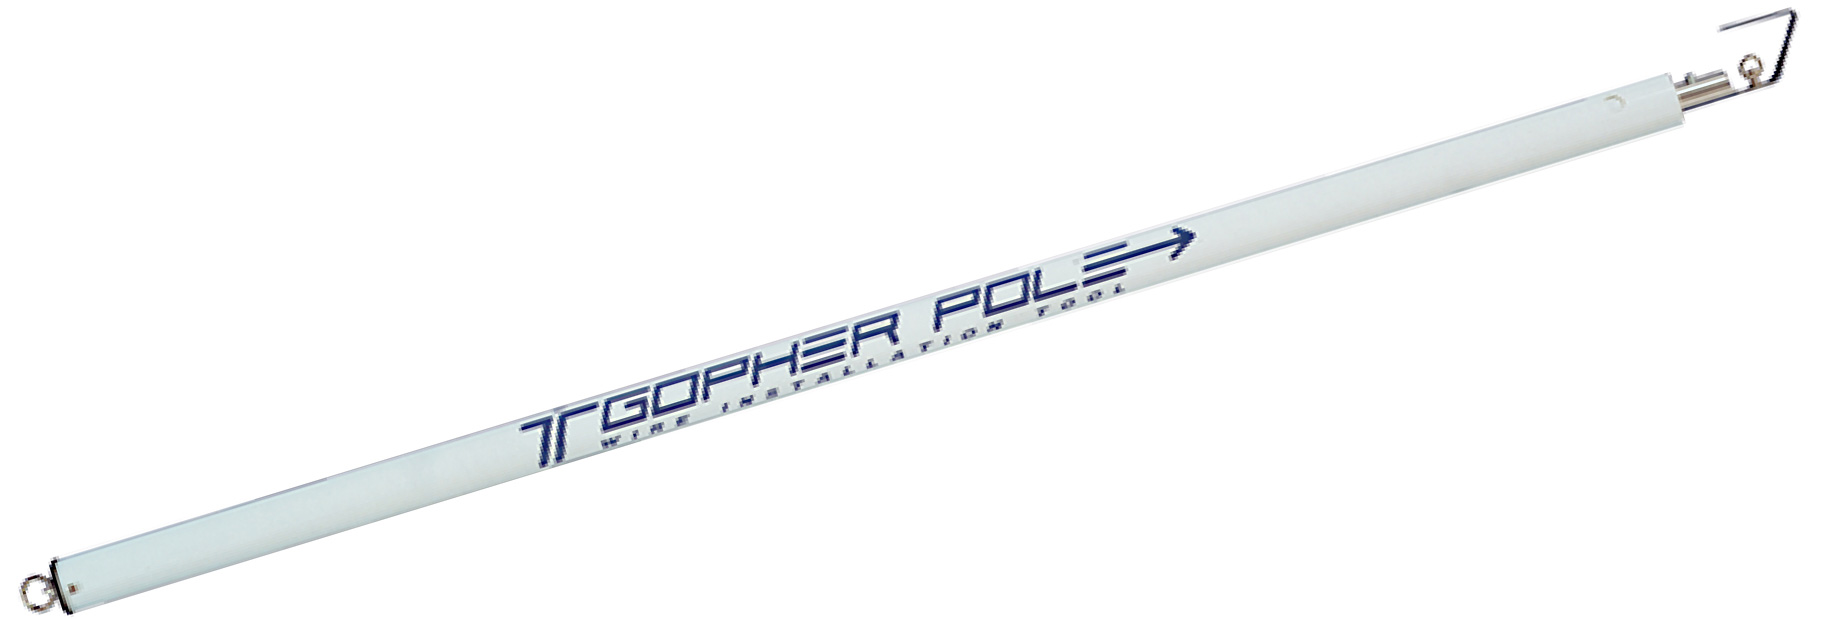 Gopher Pole Telescoping Wire Installation Tool GO-POLE